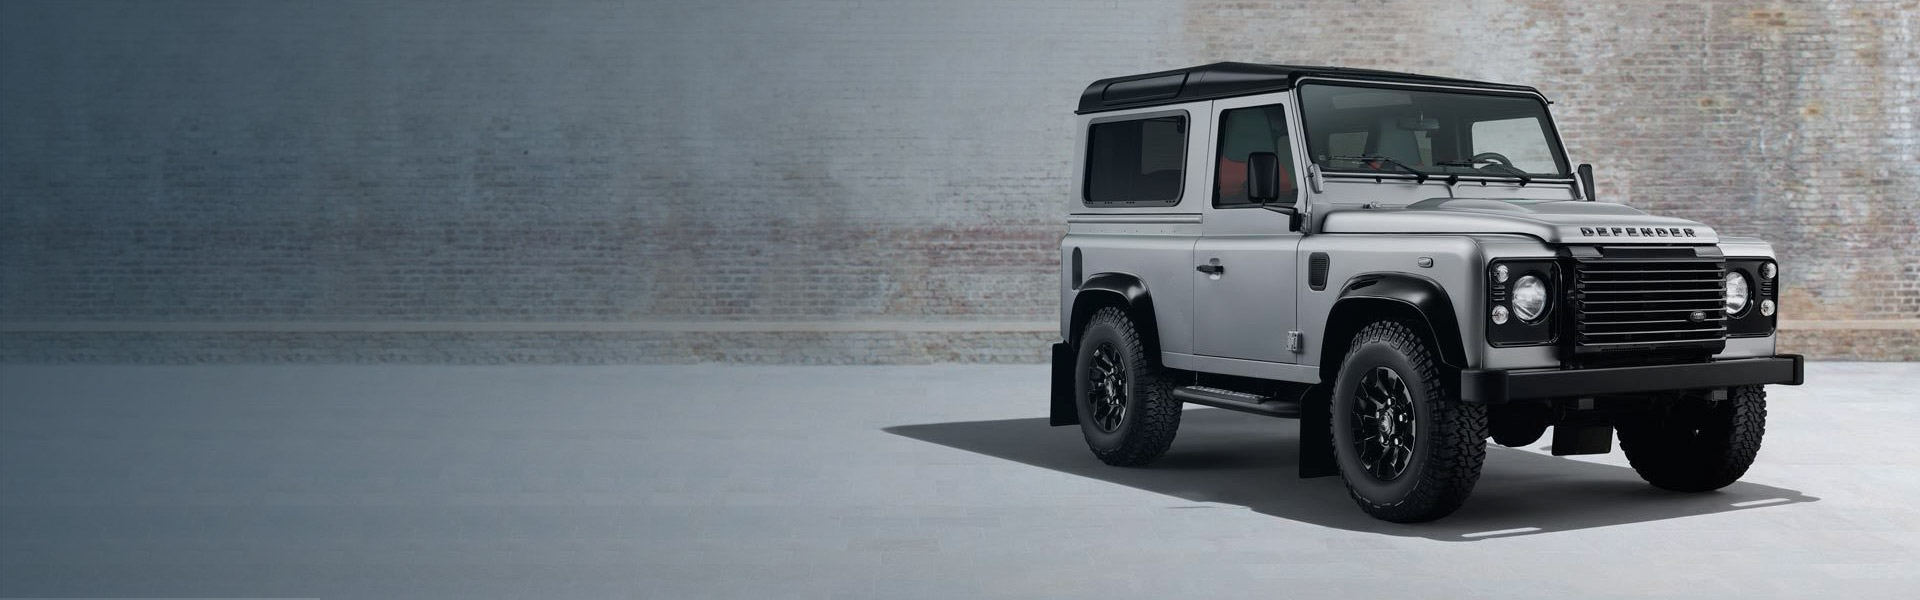 slider-land-rover